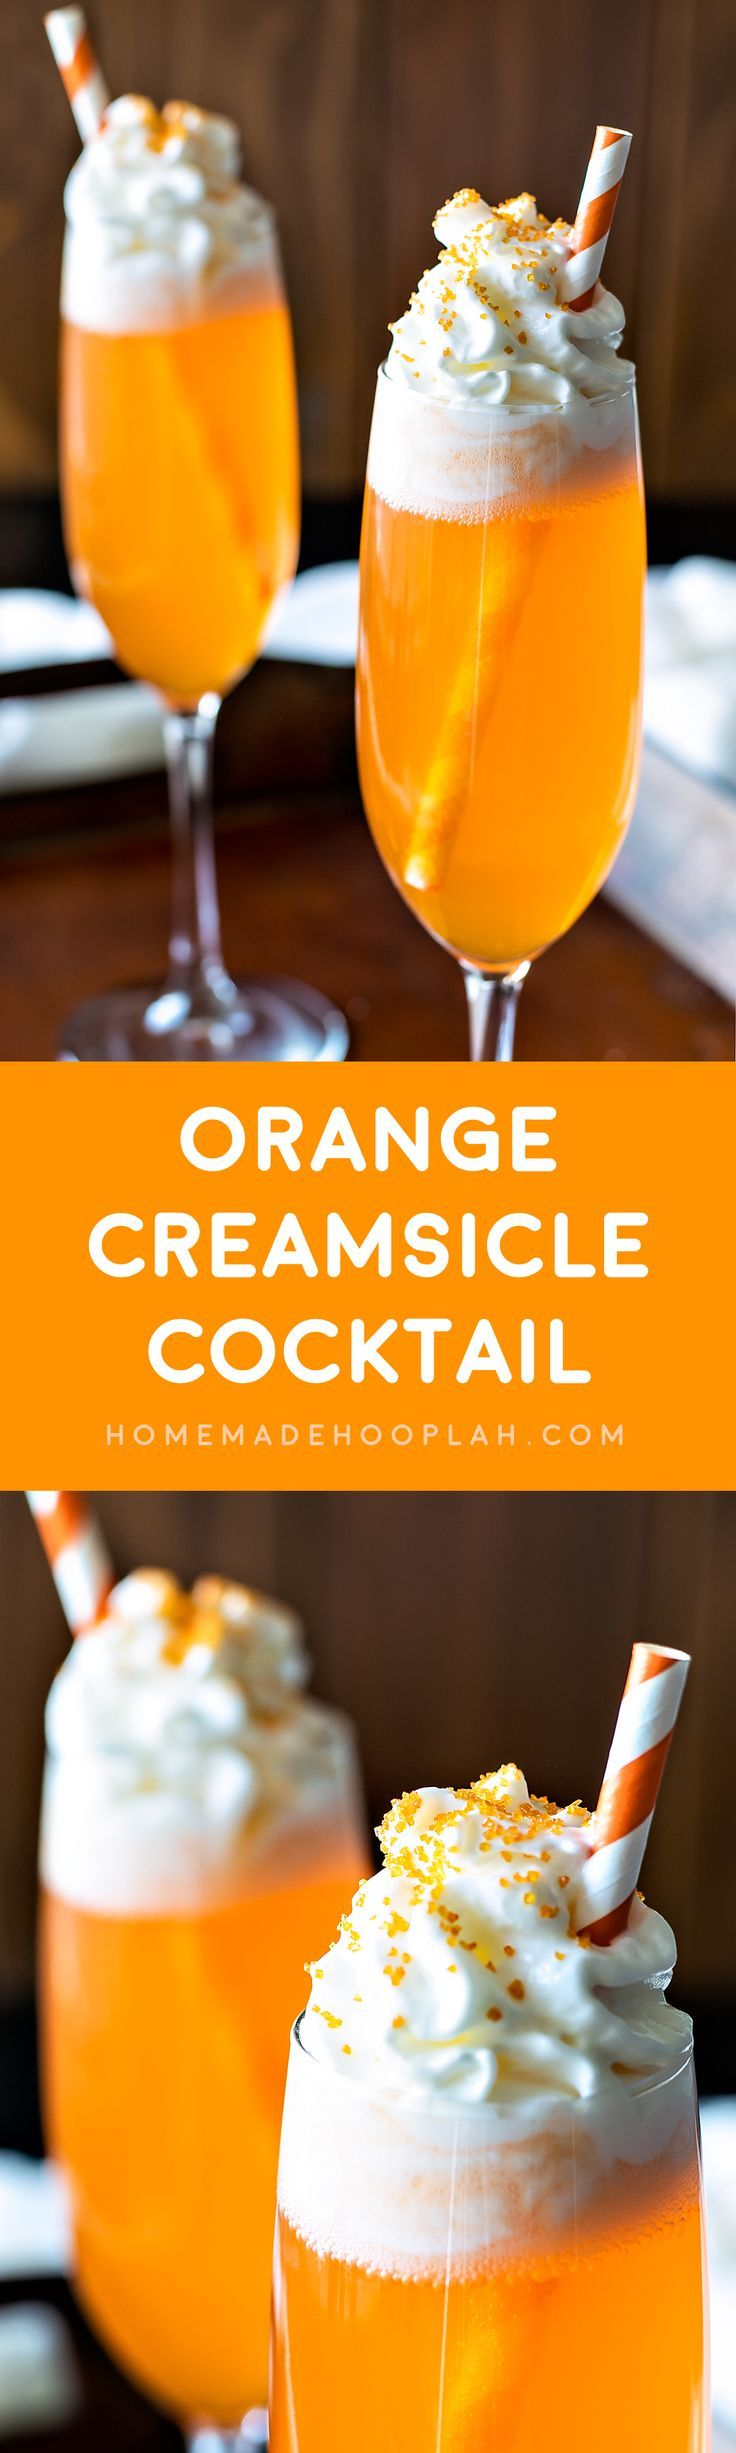 Orange Creamsicle Cocktail! If you like the popsicle, you'll love this cocktail!